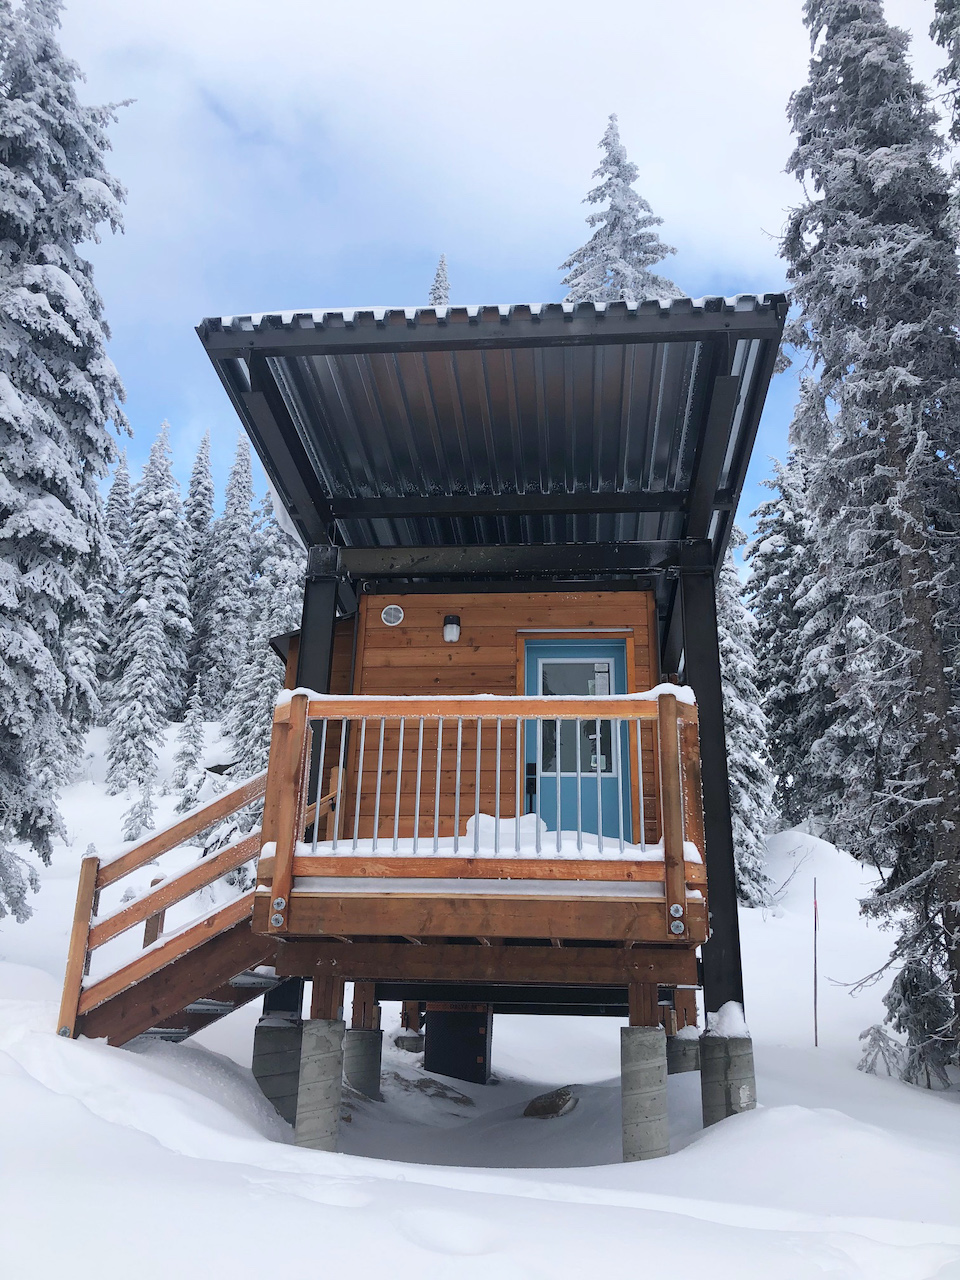 Meet-Constella-A-New-On-Mountain-Cabin-Experience-at-RED-new-cabin-awning